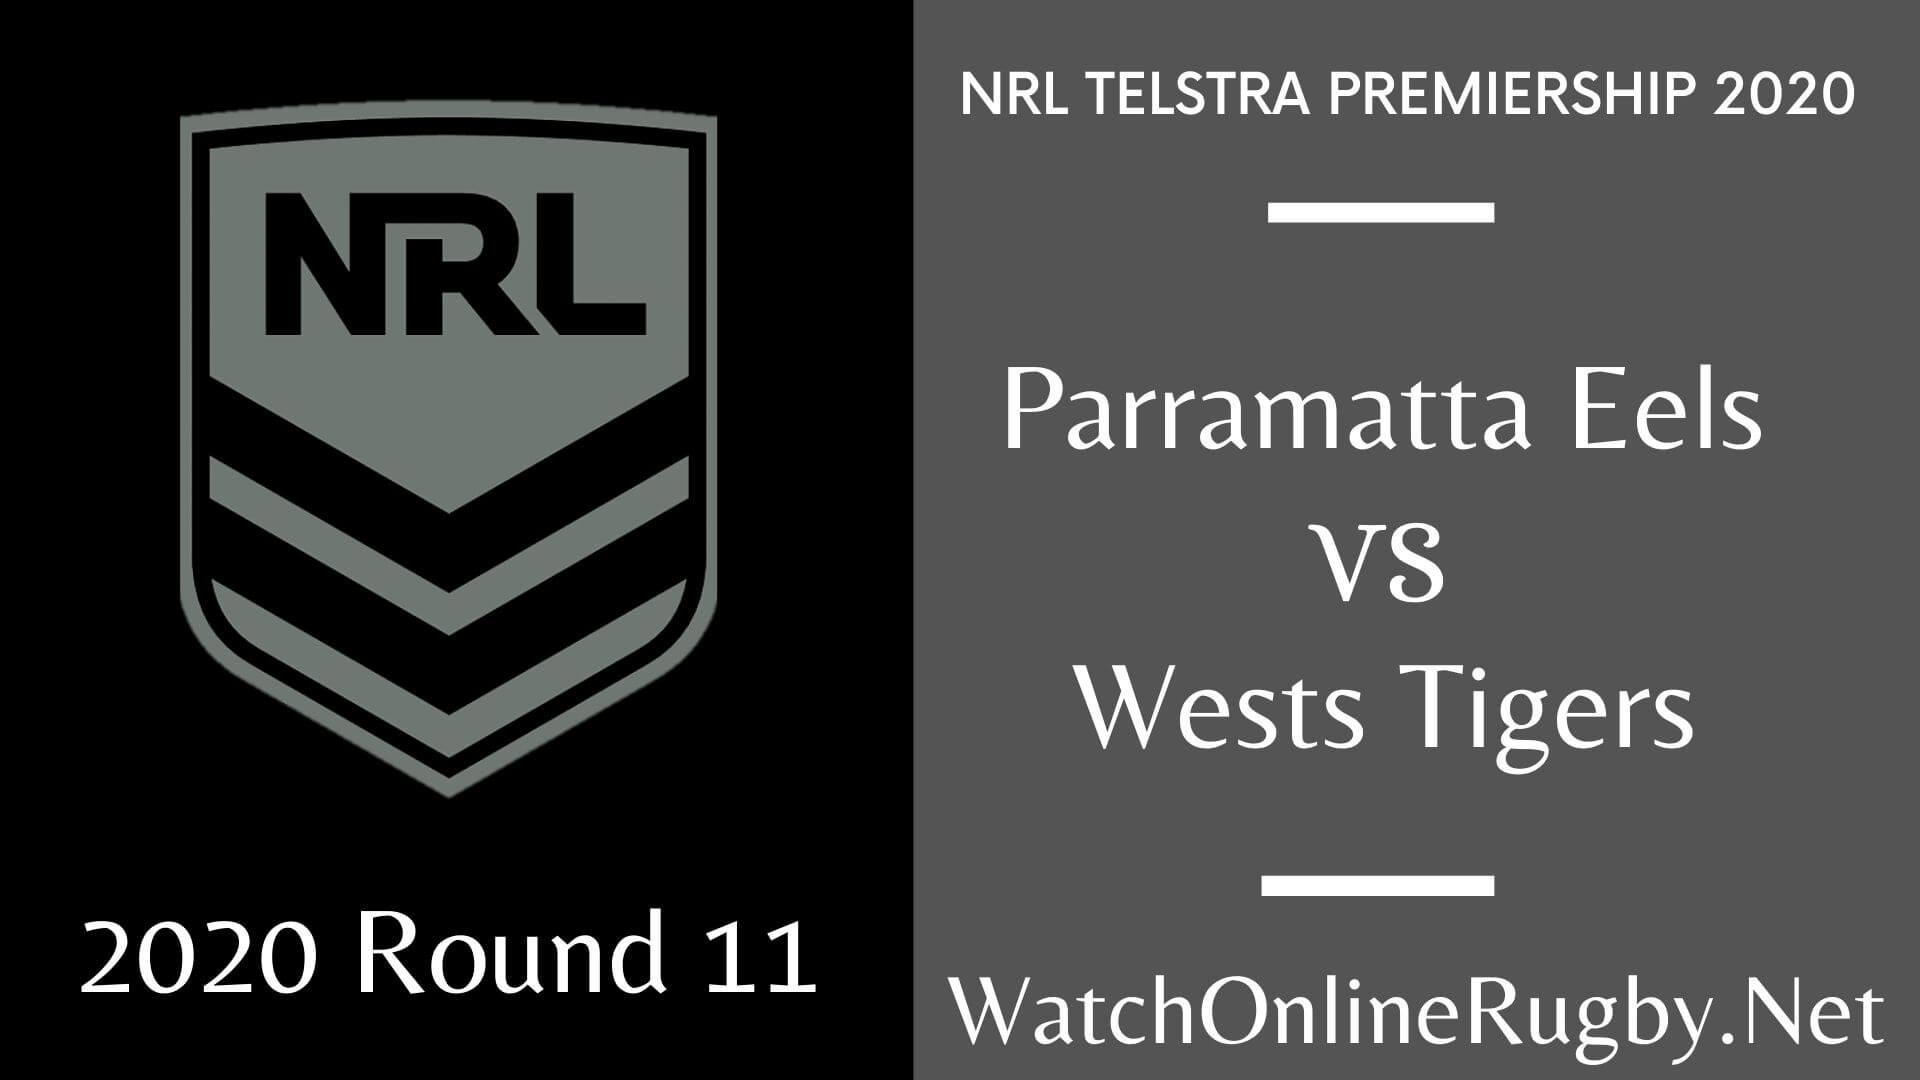 Eels Vs Wests Tiger Highlights 2020 Round 11 Nrl Rugby